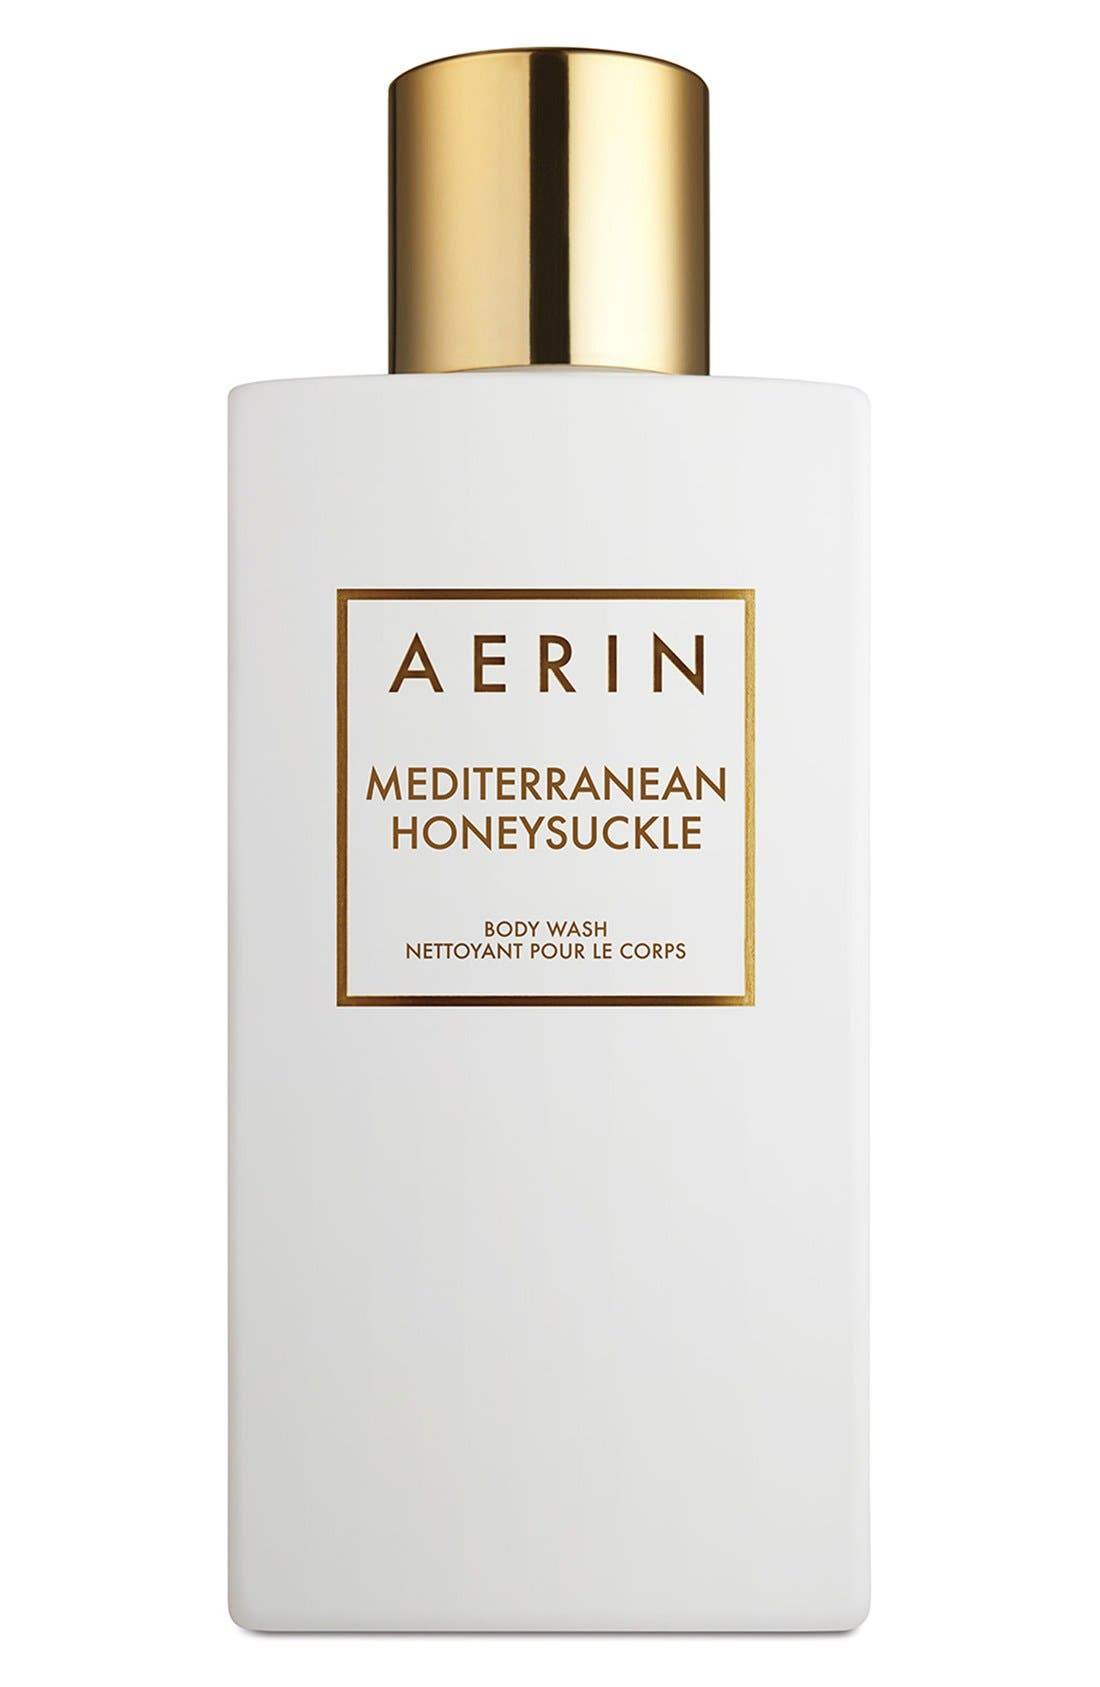 AERIN Beauty Mediterranean Honeysuckle Body Wash